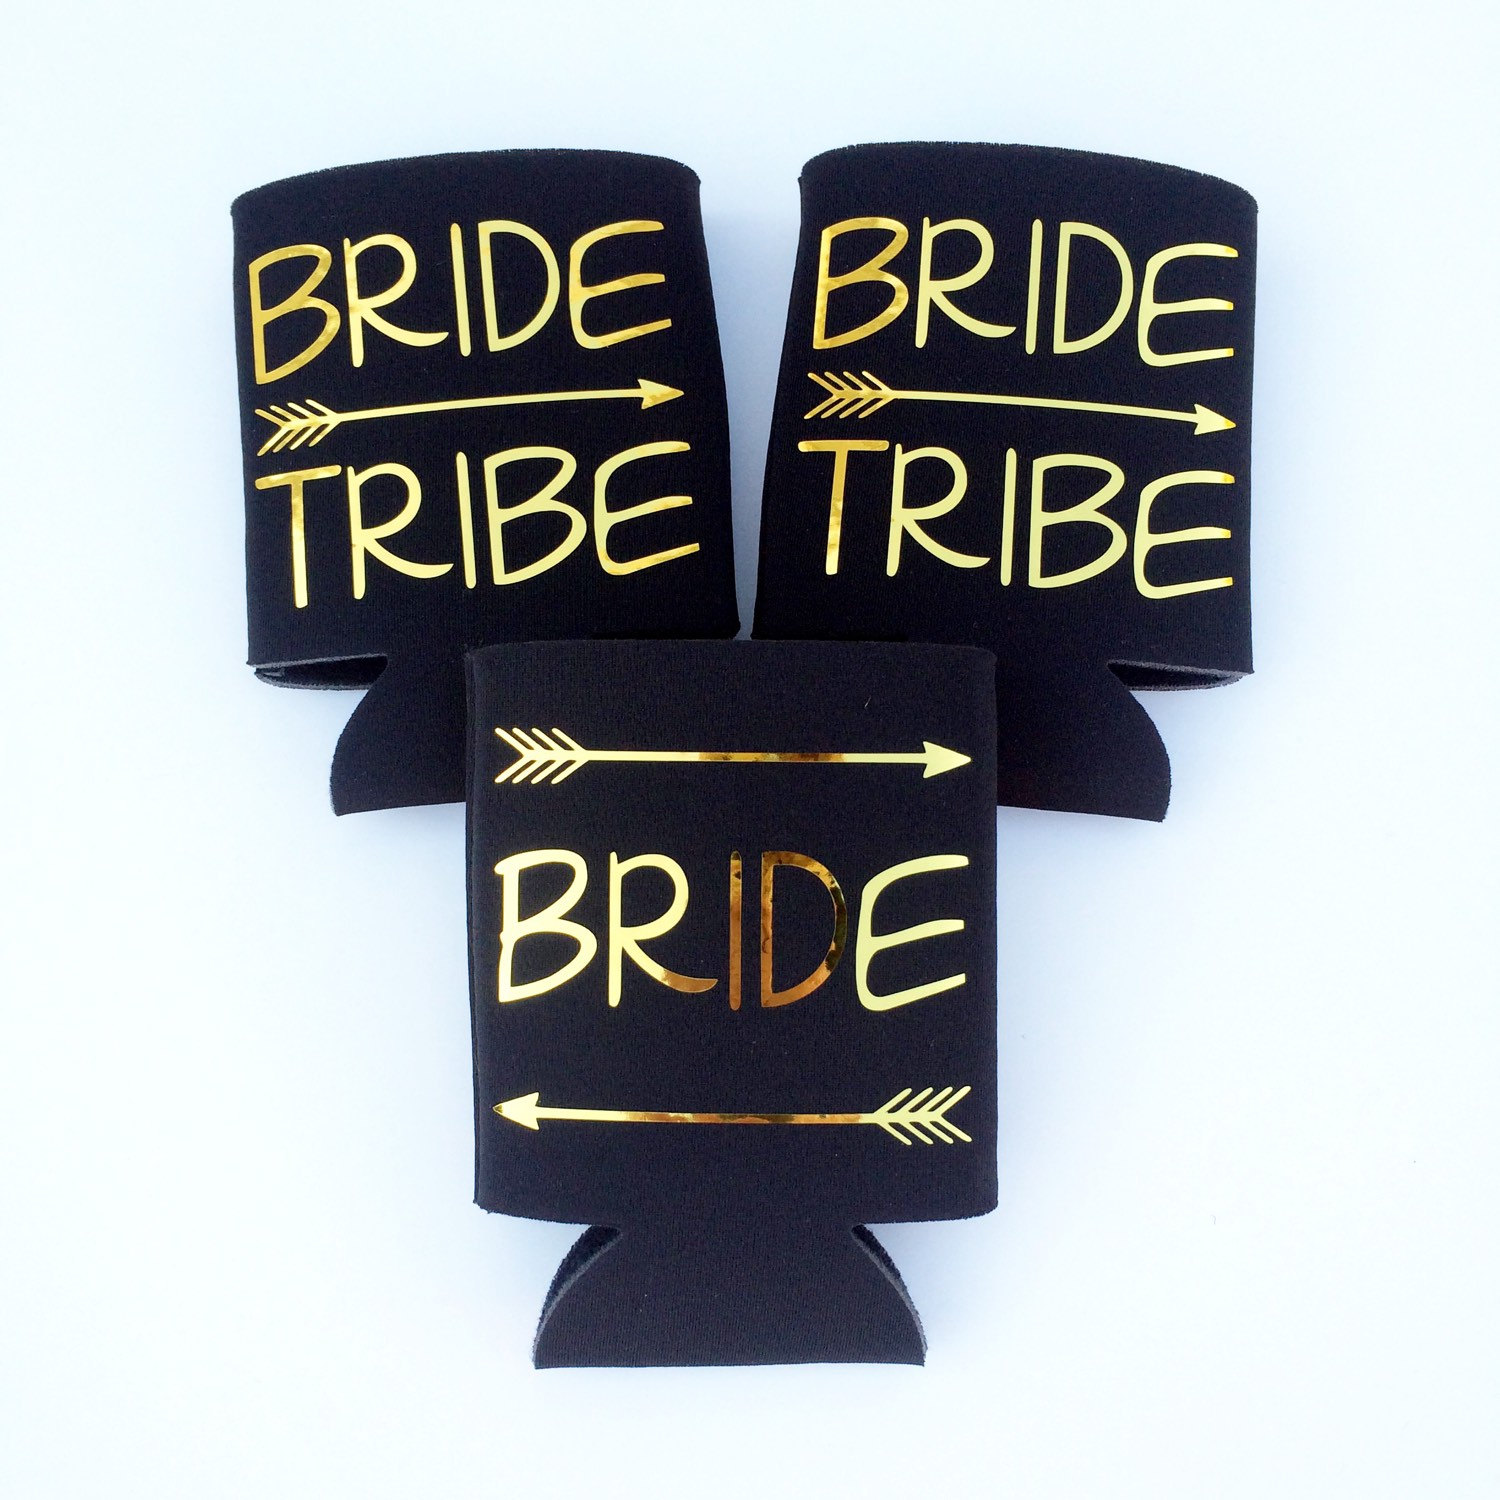 bride tribe beer koozies by TheCraftyEngineer | fun bachelorette party ideas | https://emmalinebride.com/planning/fun-bachelorette-party-ideas/